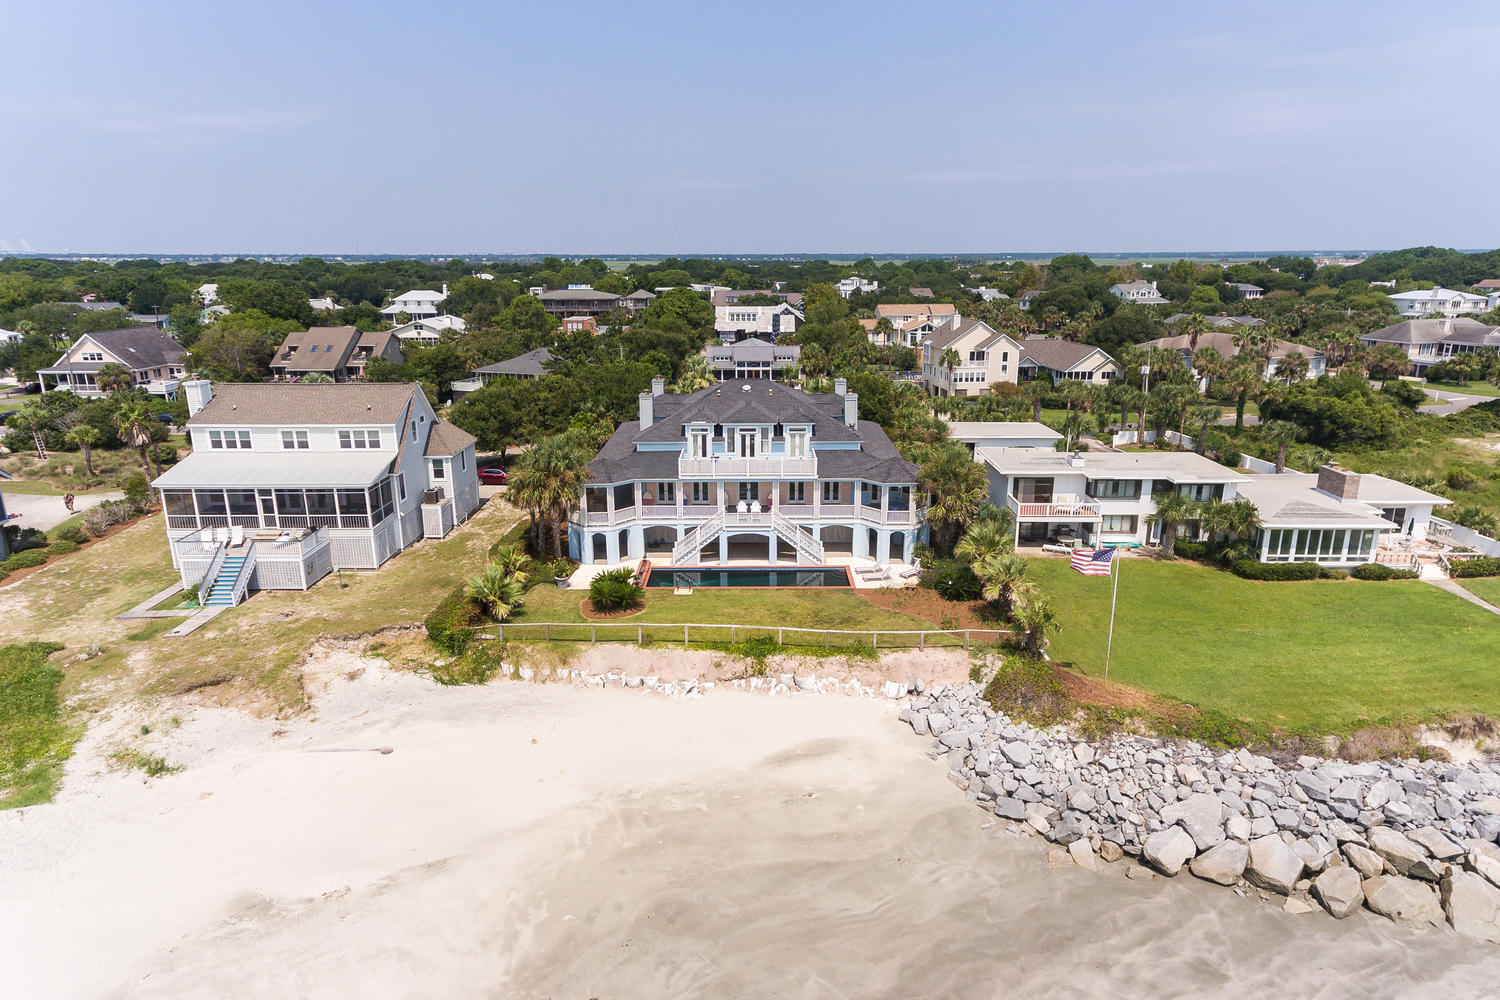 Sullivans Island Homes For Sale - 2867 Marshall, Sullivans Island, SC - 47